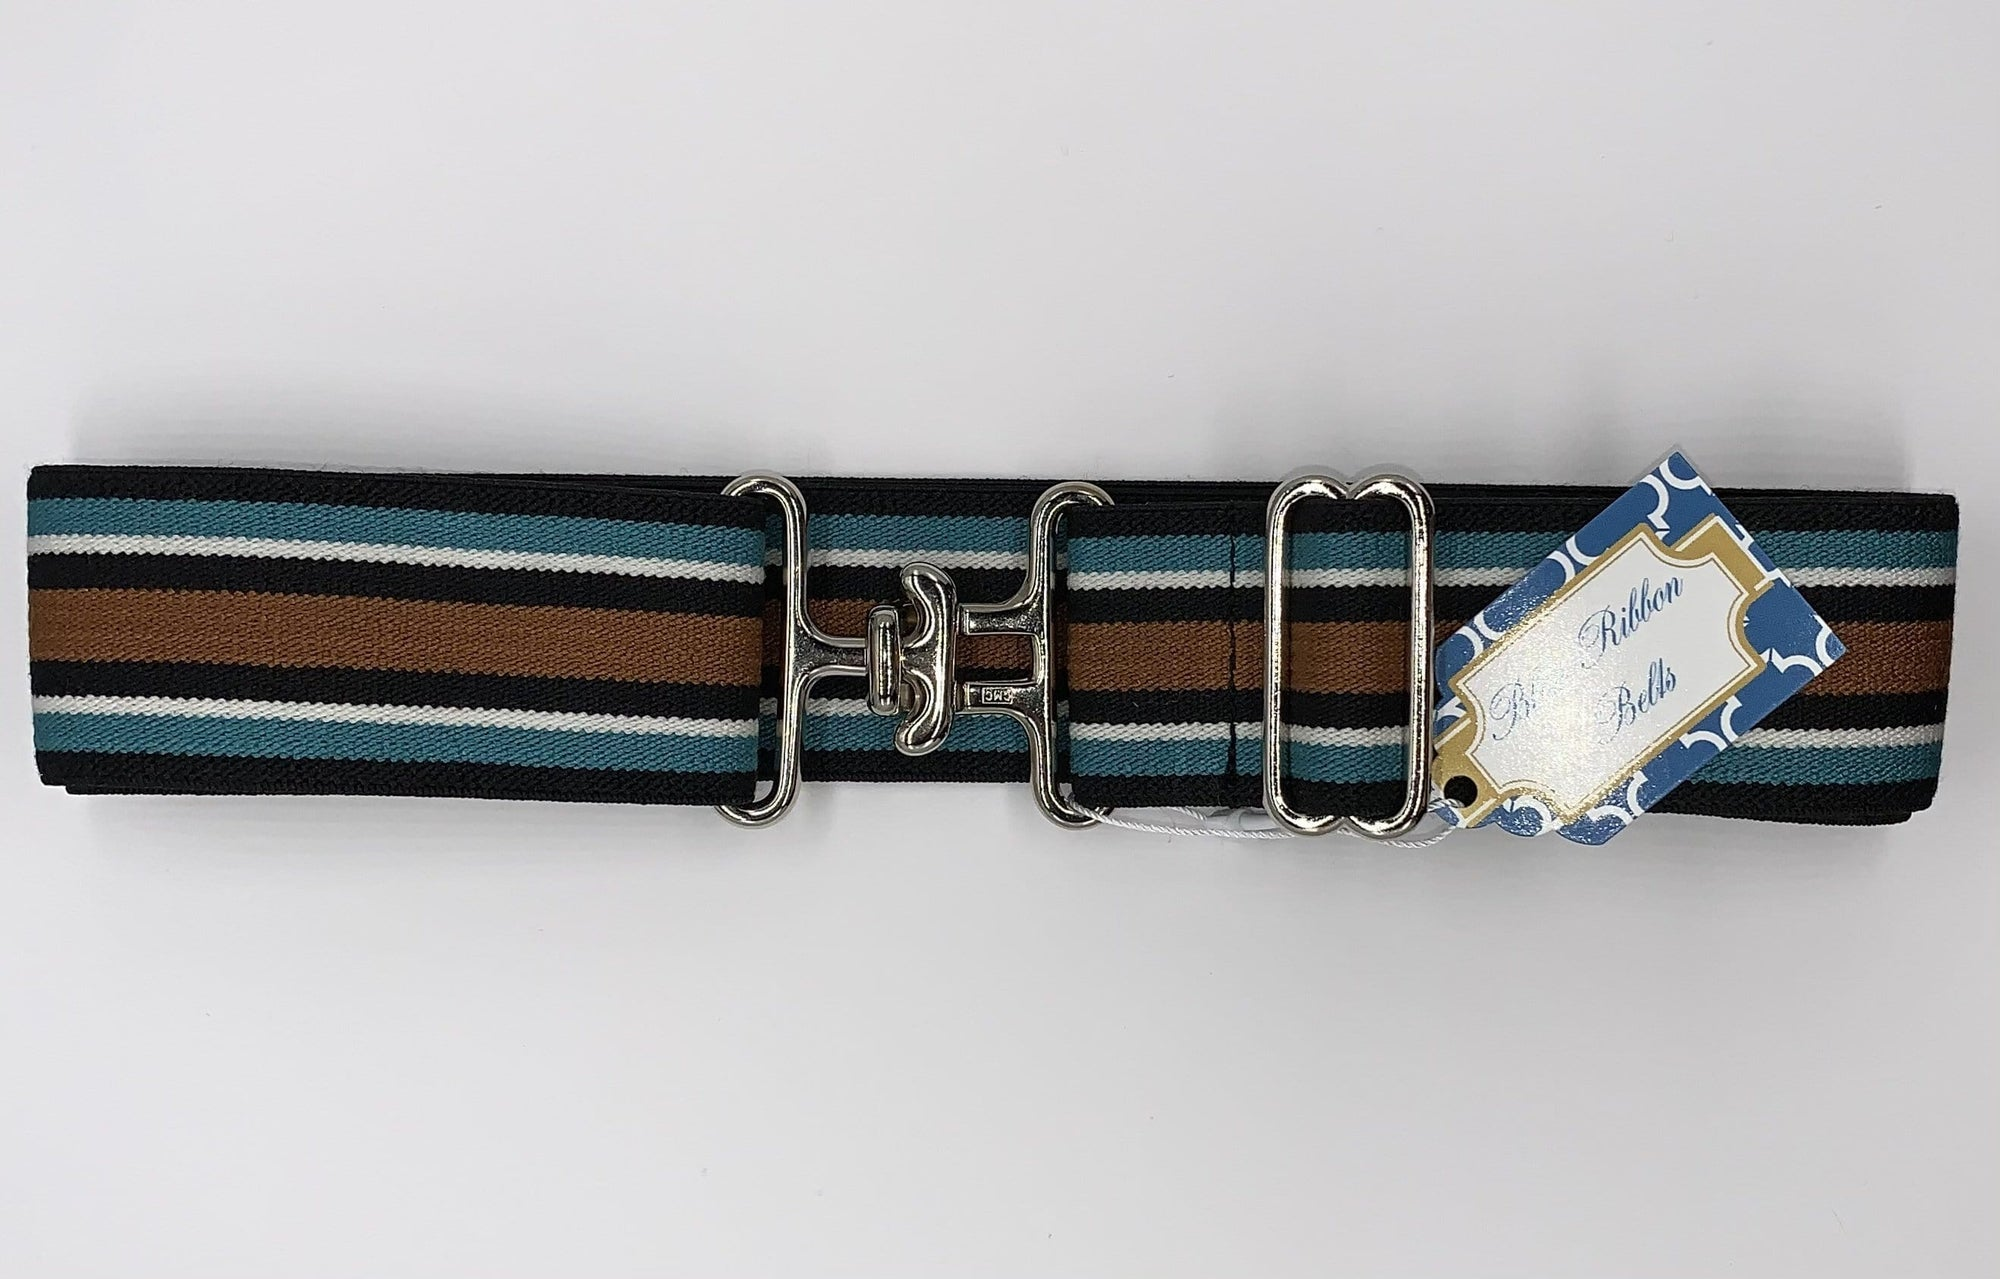 Blue Ribbon Belts Belt Black Multi Color Stripe Belt 1.5 Inch equestrian team apparel online tack store mobile tack store custom farm apparel custom show stable clothing equestrian lifestyle horse show clothing riding clothes horses equestrian tack store